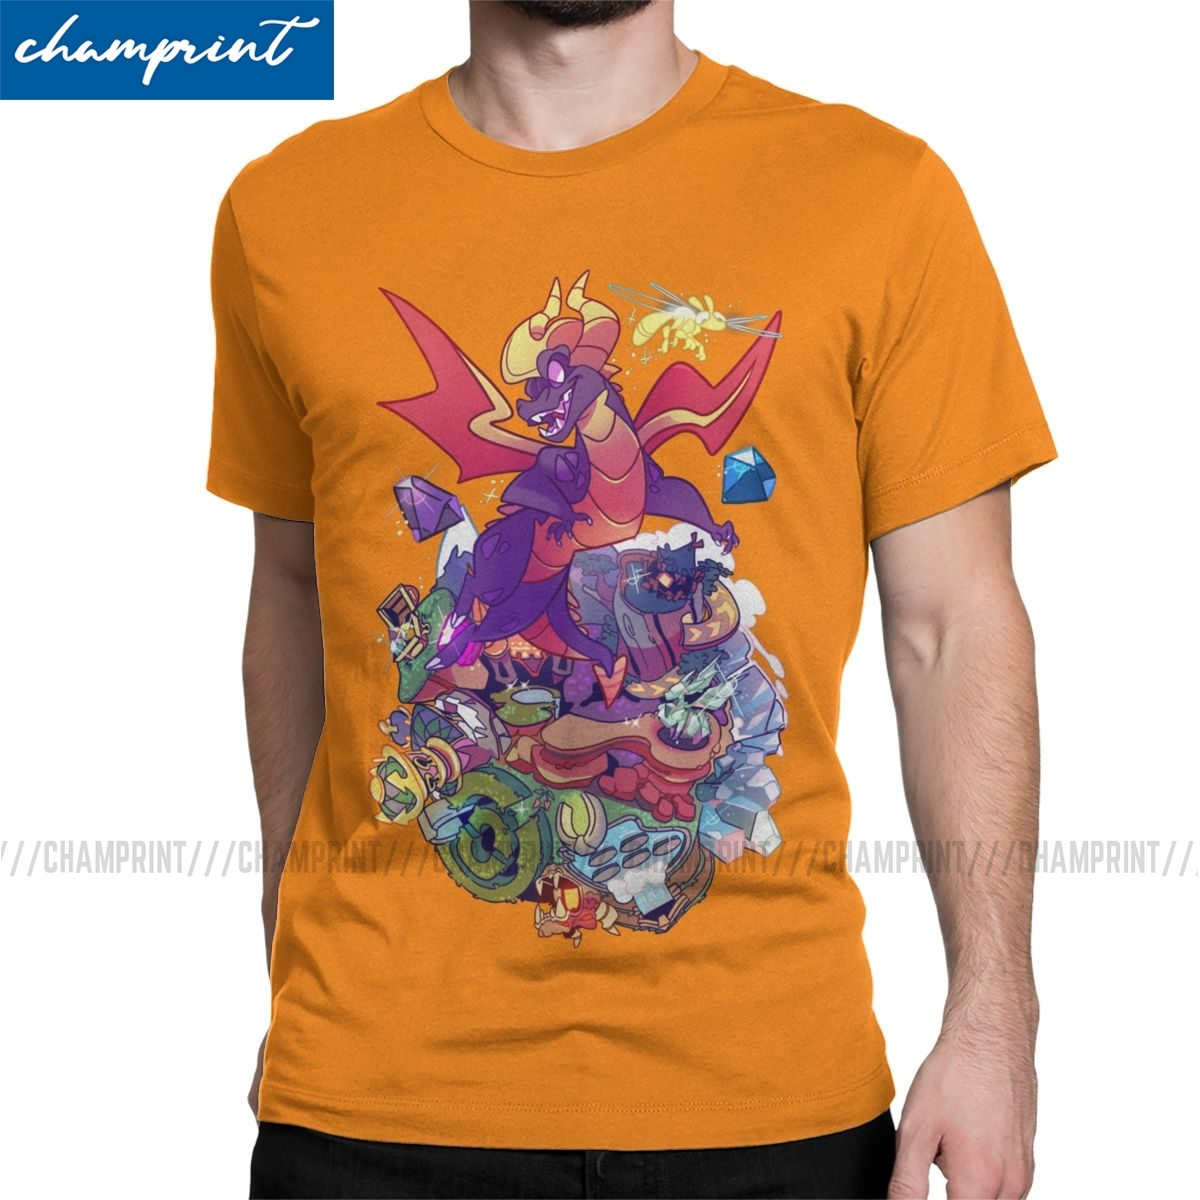 This Little Punk Men T Shirt Spyro the Dragon Purple Dragon Game Humor Tees Crew Neck T-Shirt 100% Cotton Printing Clothes image